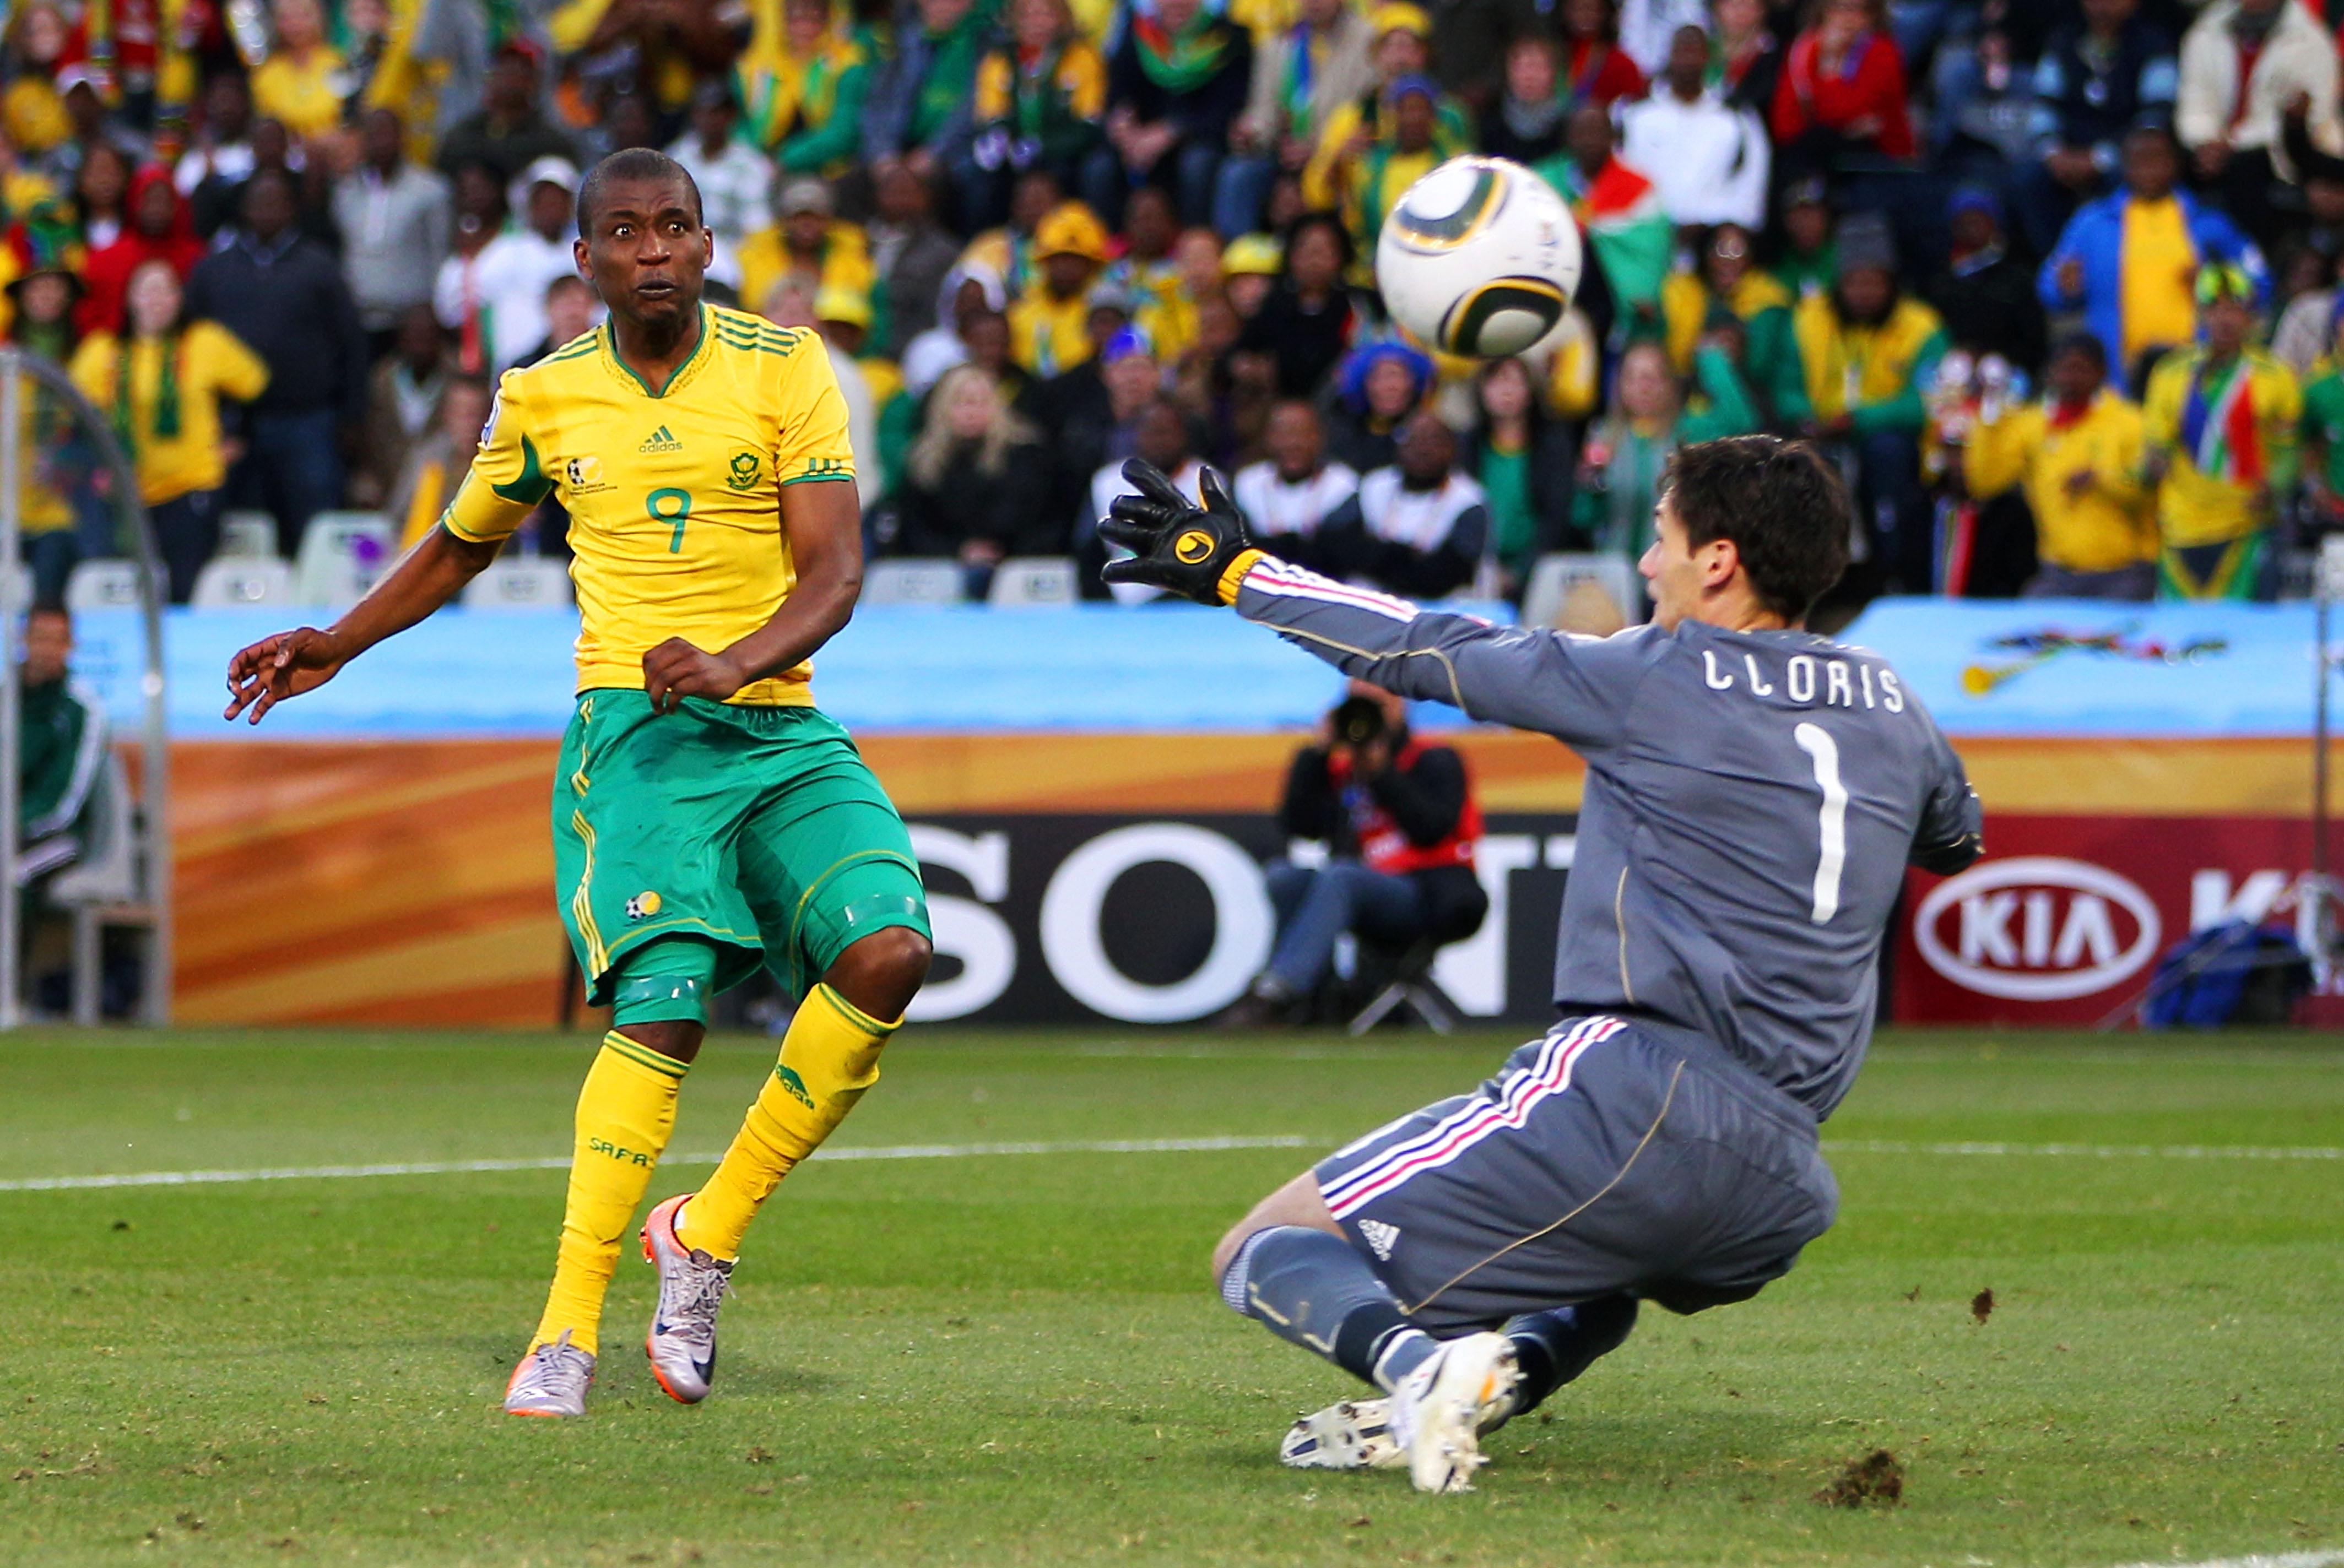 BLOEMFONTEIN, SOUTH AFRICA - JUNE 22: Katlego Mphela of South Africa shoots at goal during the 2010 FIFA World Cup South Africa Group A match between France and South Africa at the Free State Stadium on June 22, 2010 in Mangaung/Bloemfontein, South Africa